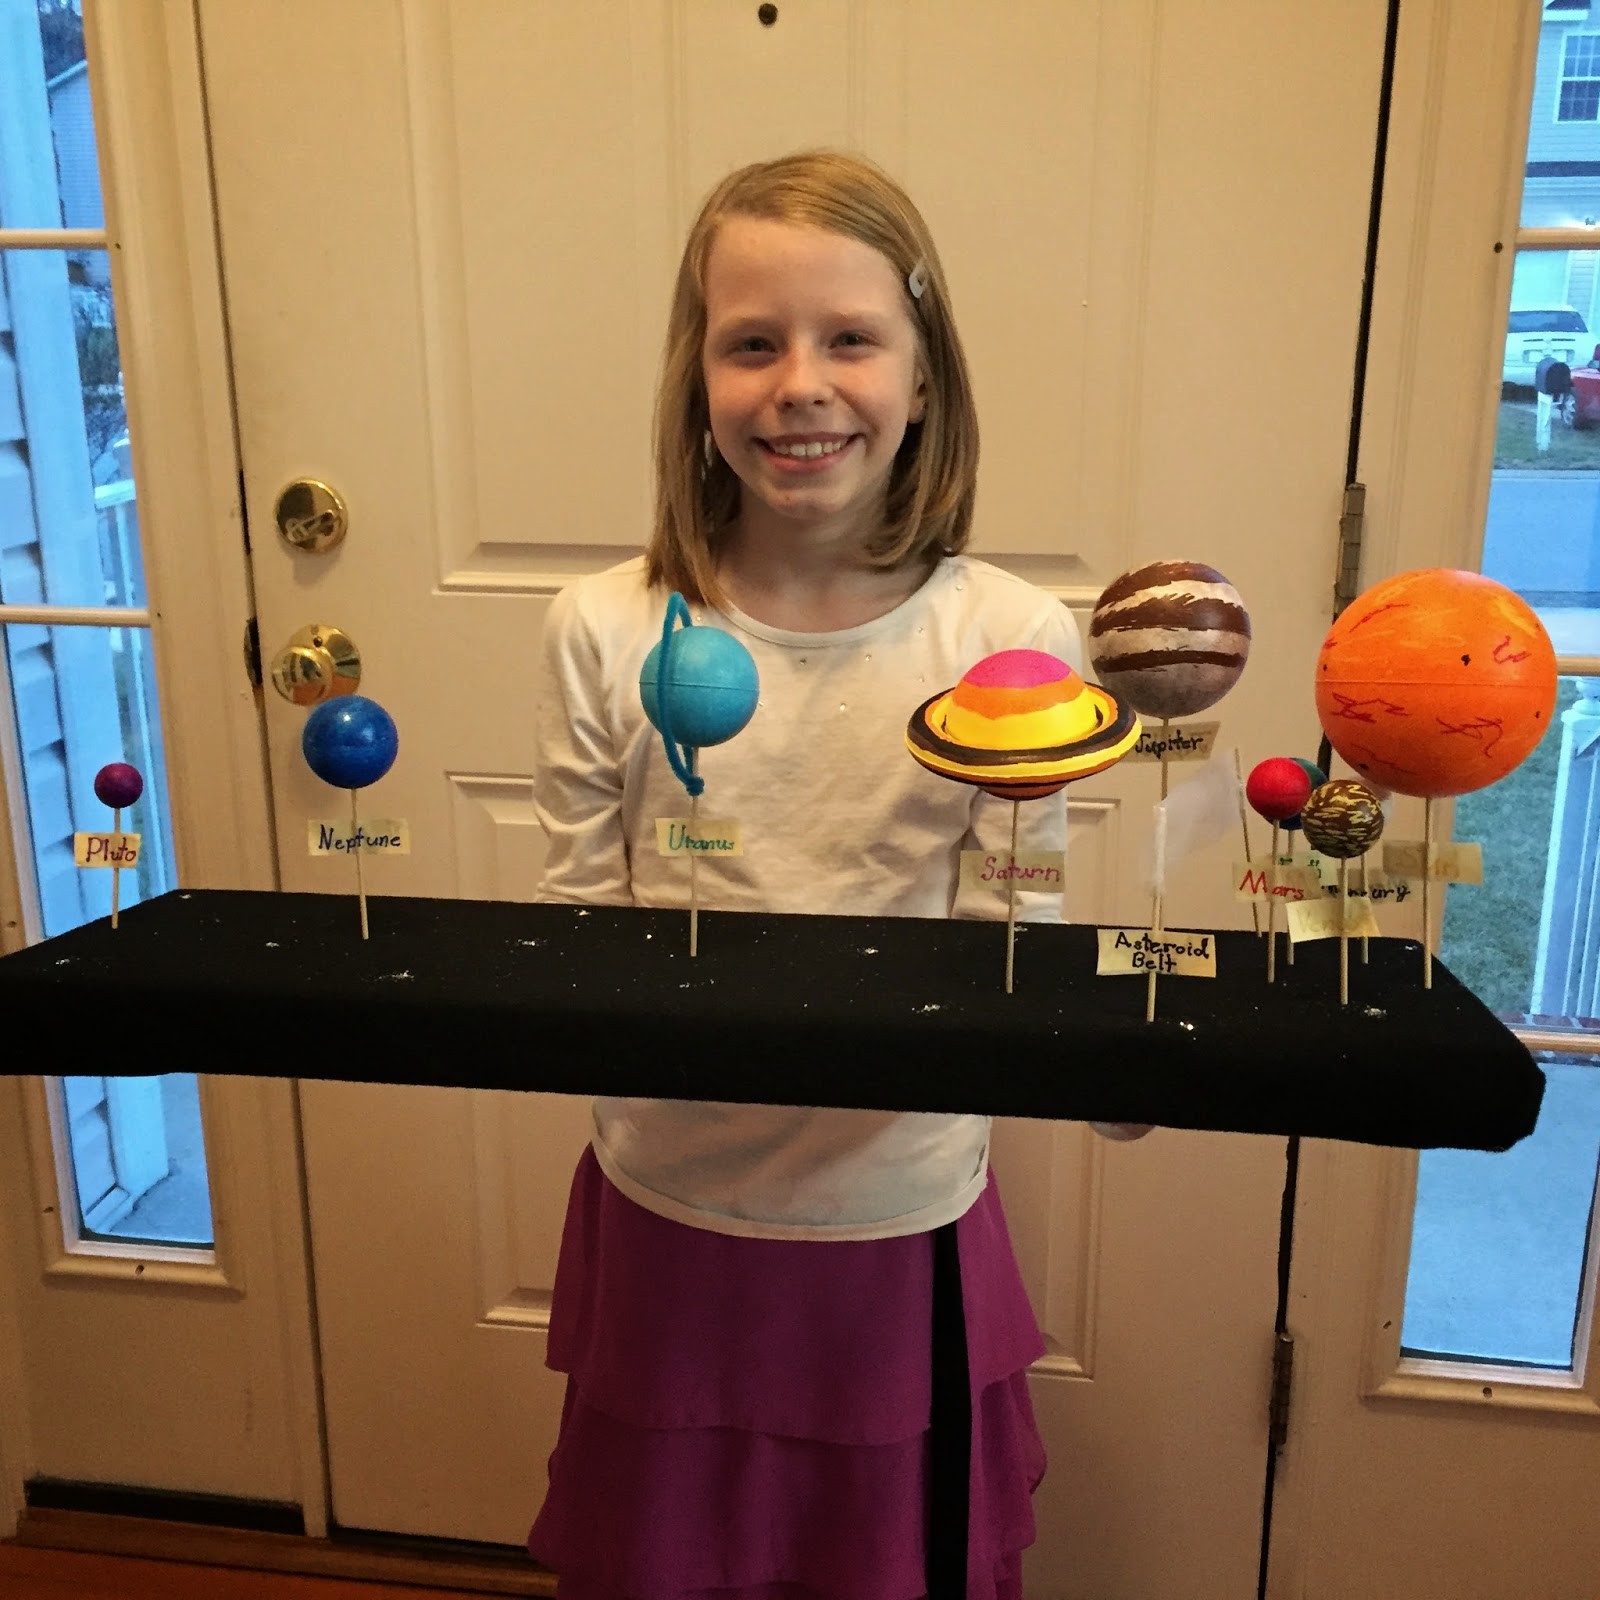 Welcome to the Krazy Kingdom: Lorien's Solar System Project